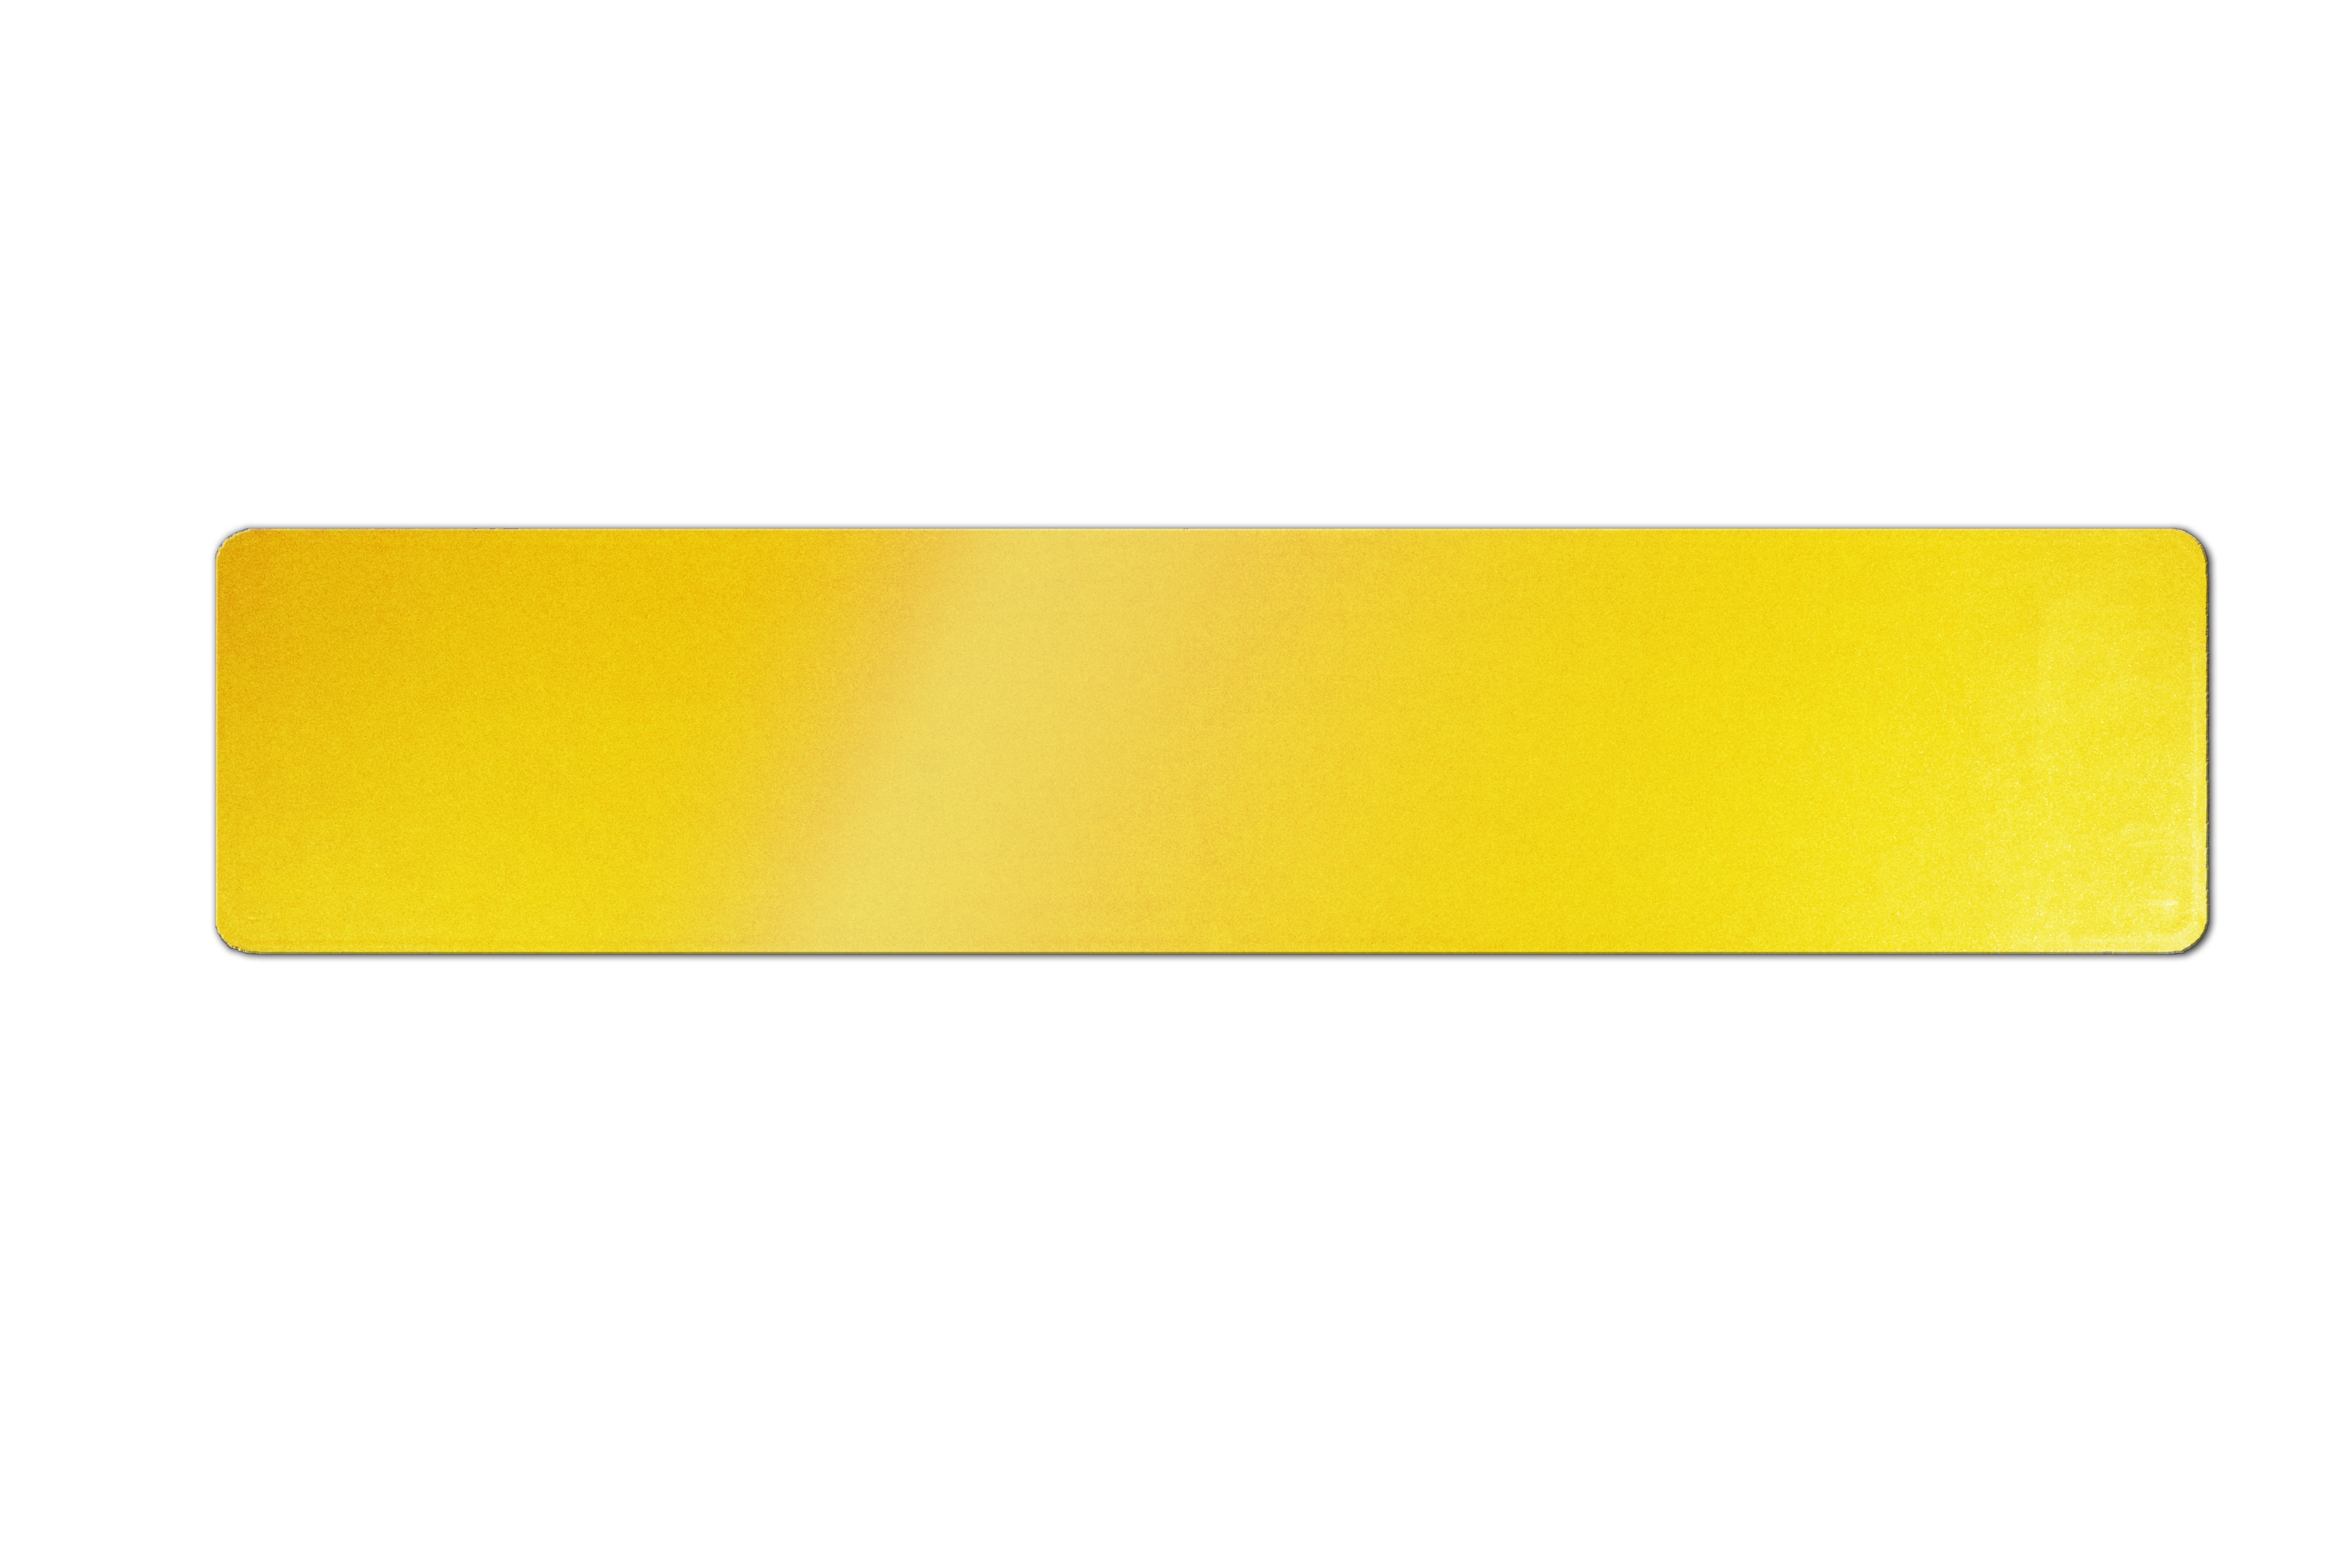 Eco-plate car standard oblong yellow ABS backing: 520 x 111mm